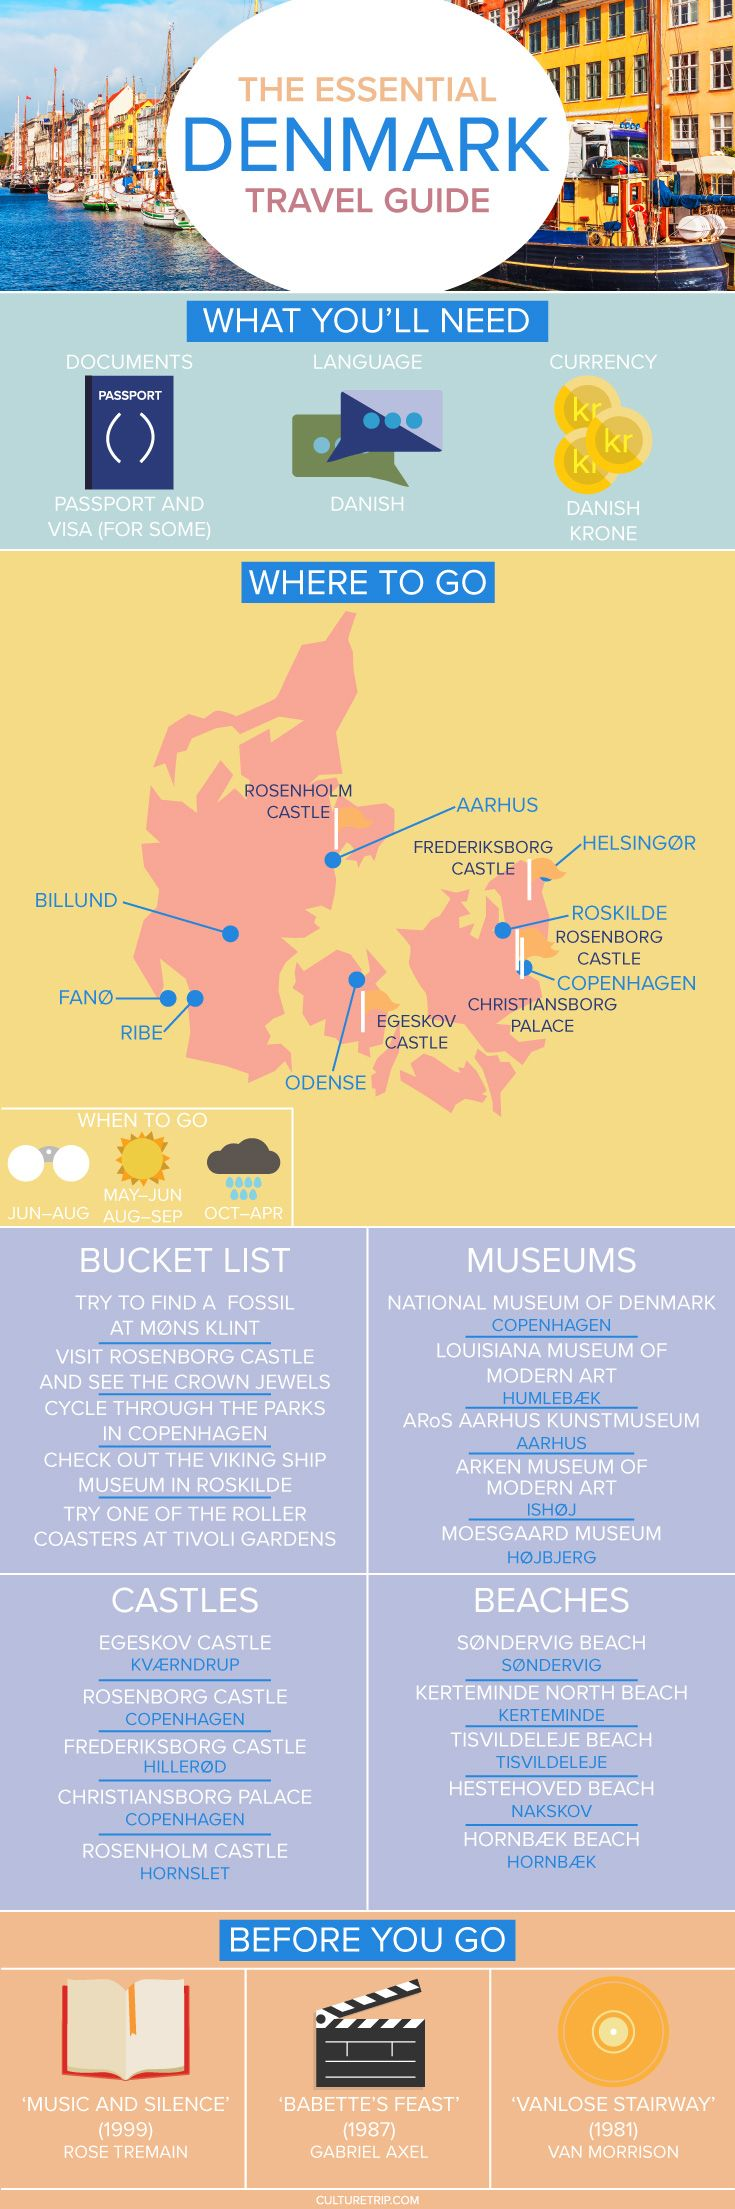 The Essential Travel Guide to Denmark (Infographic)|Pinterest: @theculturetrip